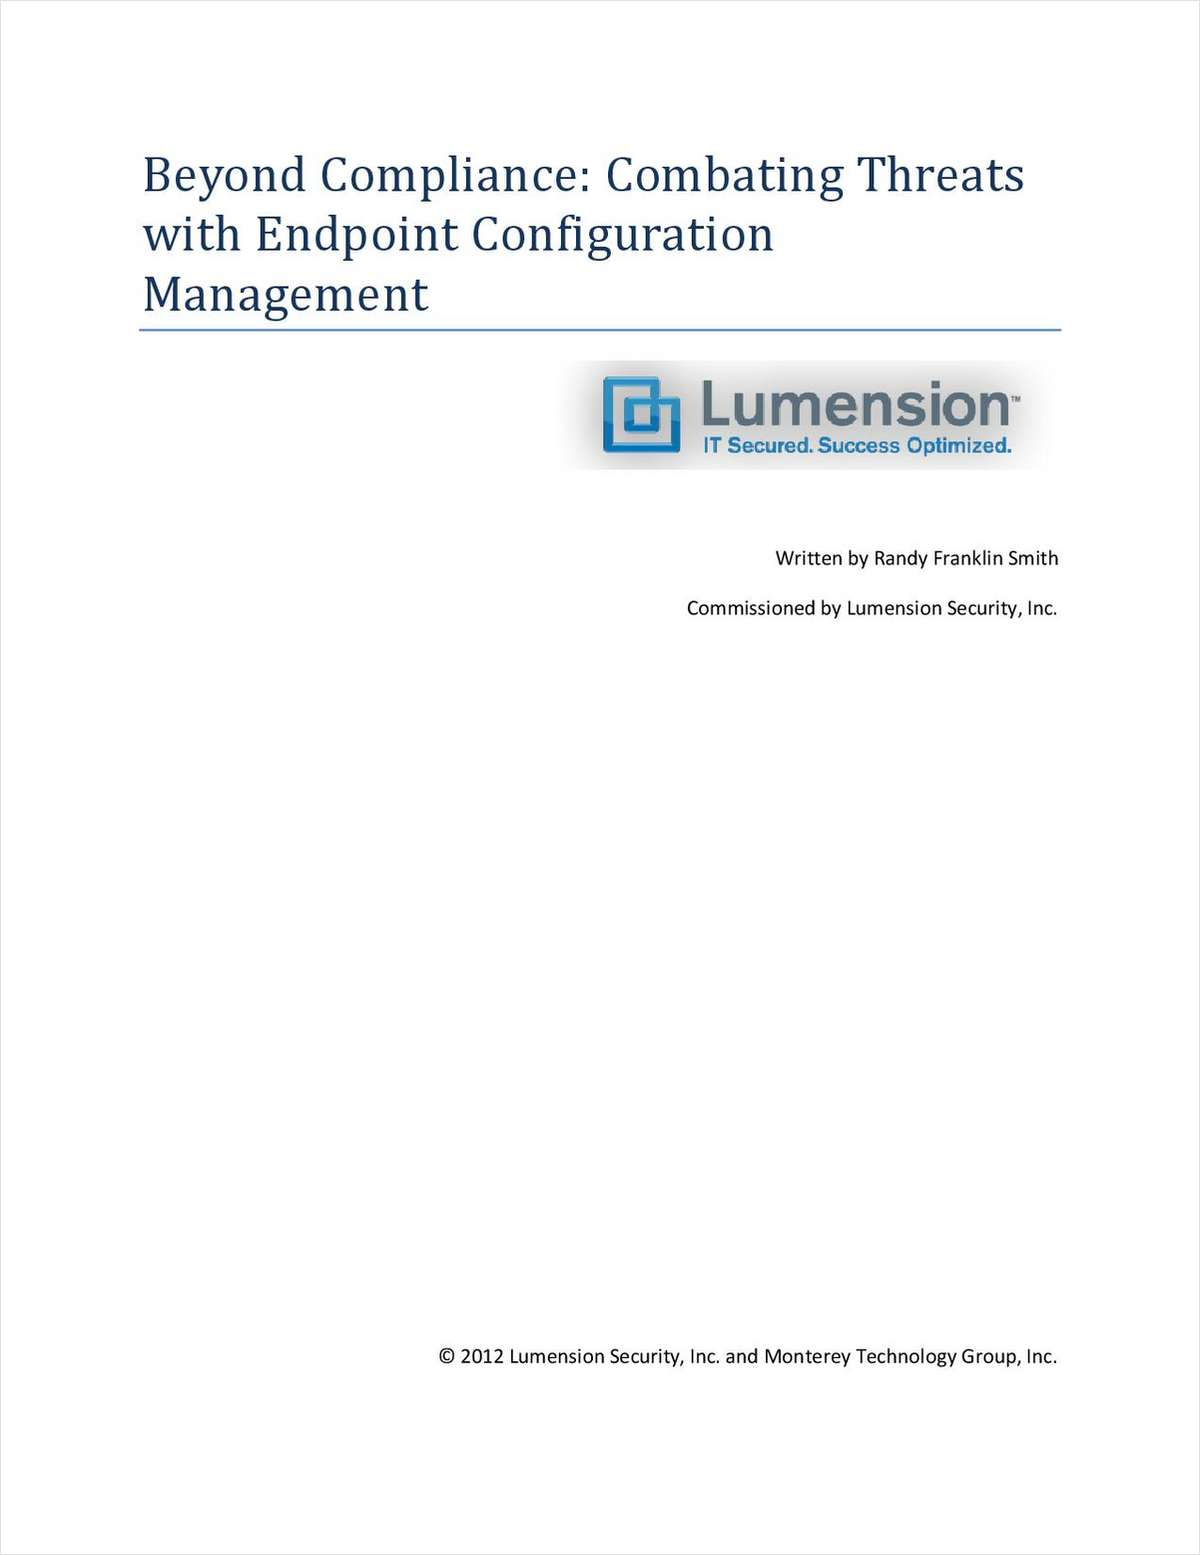 Beyond Compliance: Combating Threats with Endpoint Configuration Management